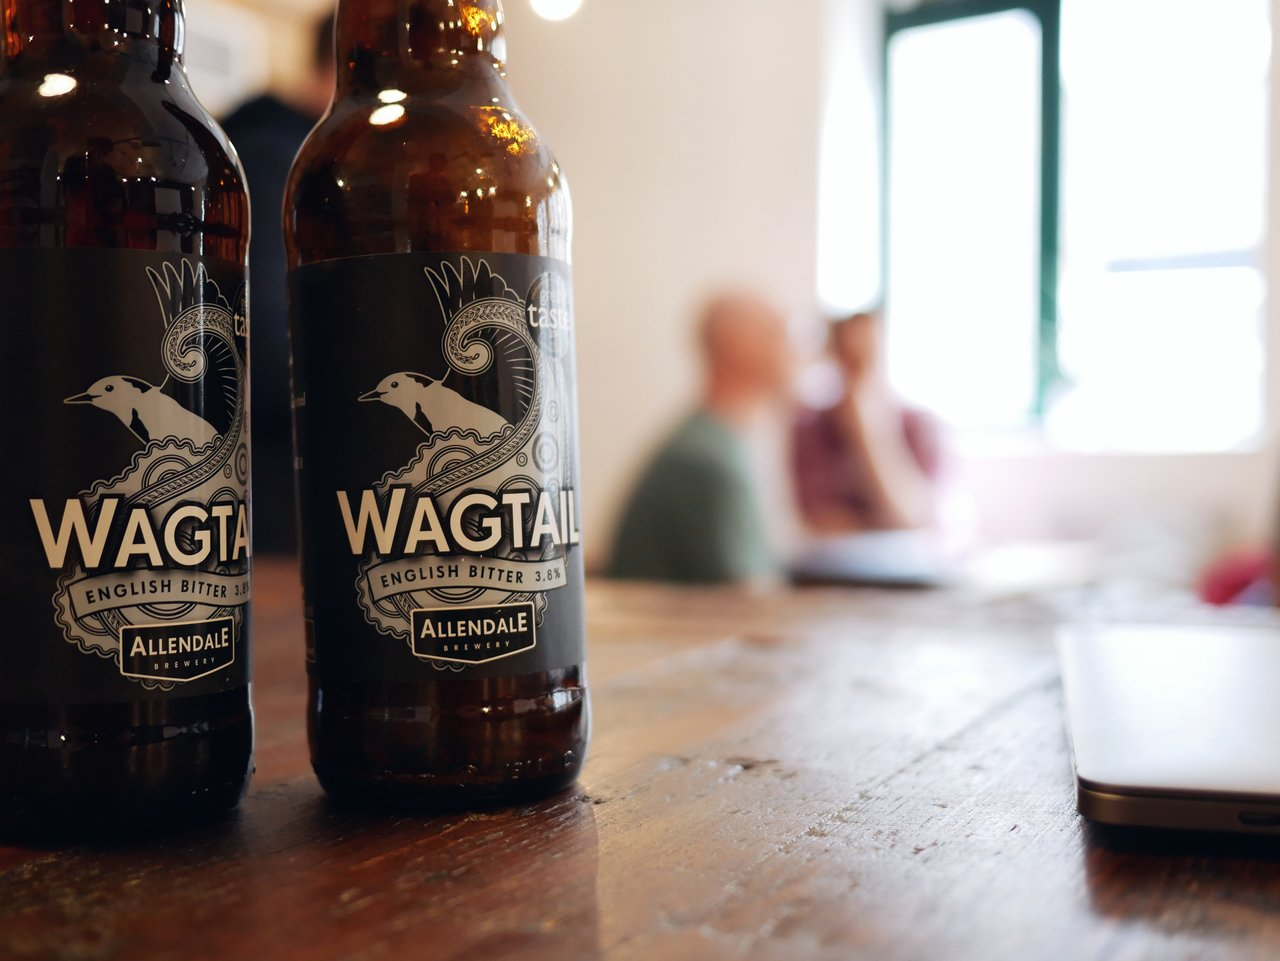 Wagtail beer